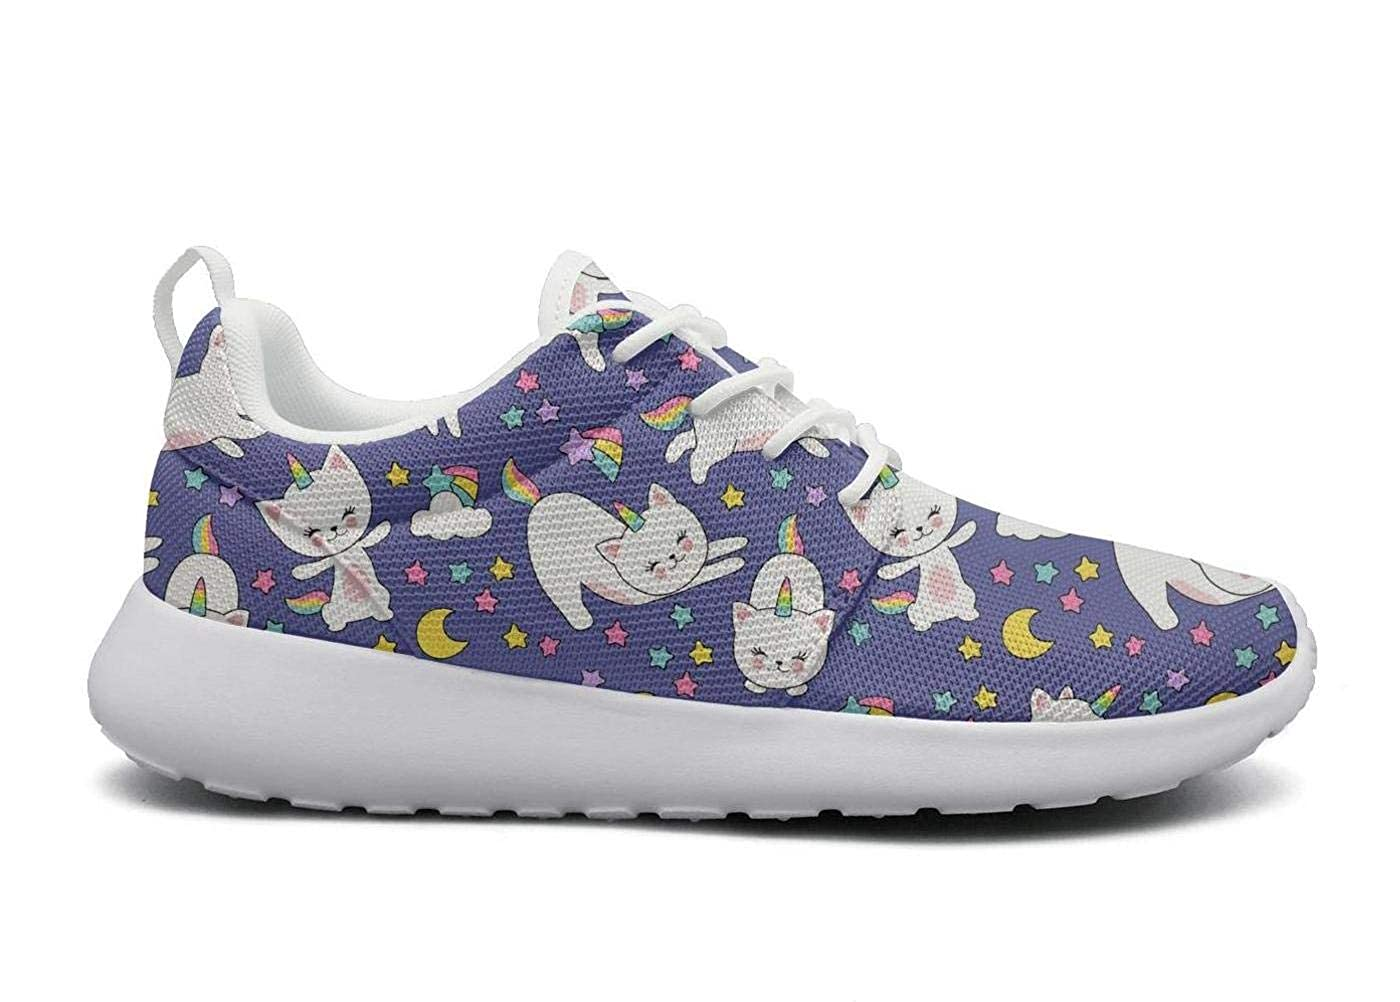 Womens lightweight Athelitic Running shoes Cute cats unicorn Moon lace-up breathable fitness sneakers